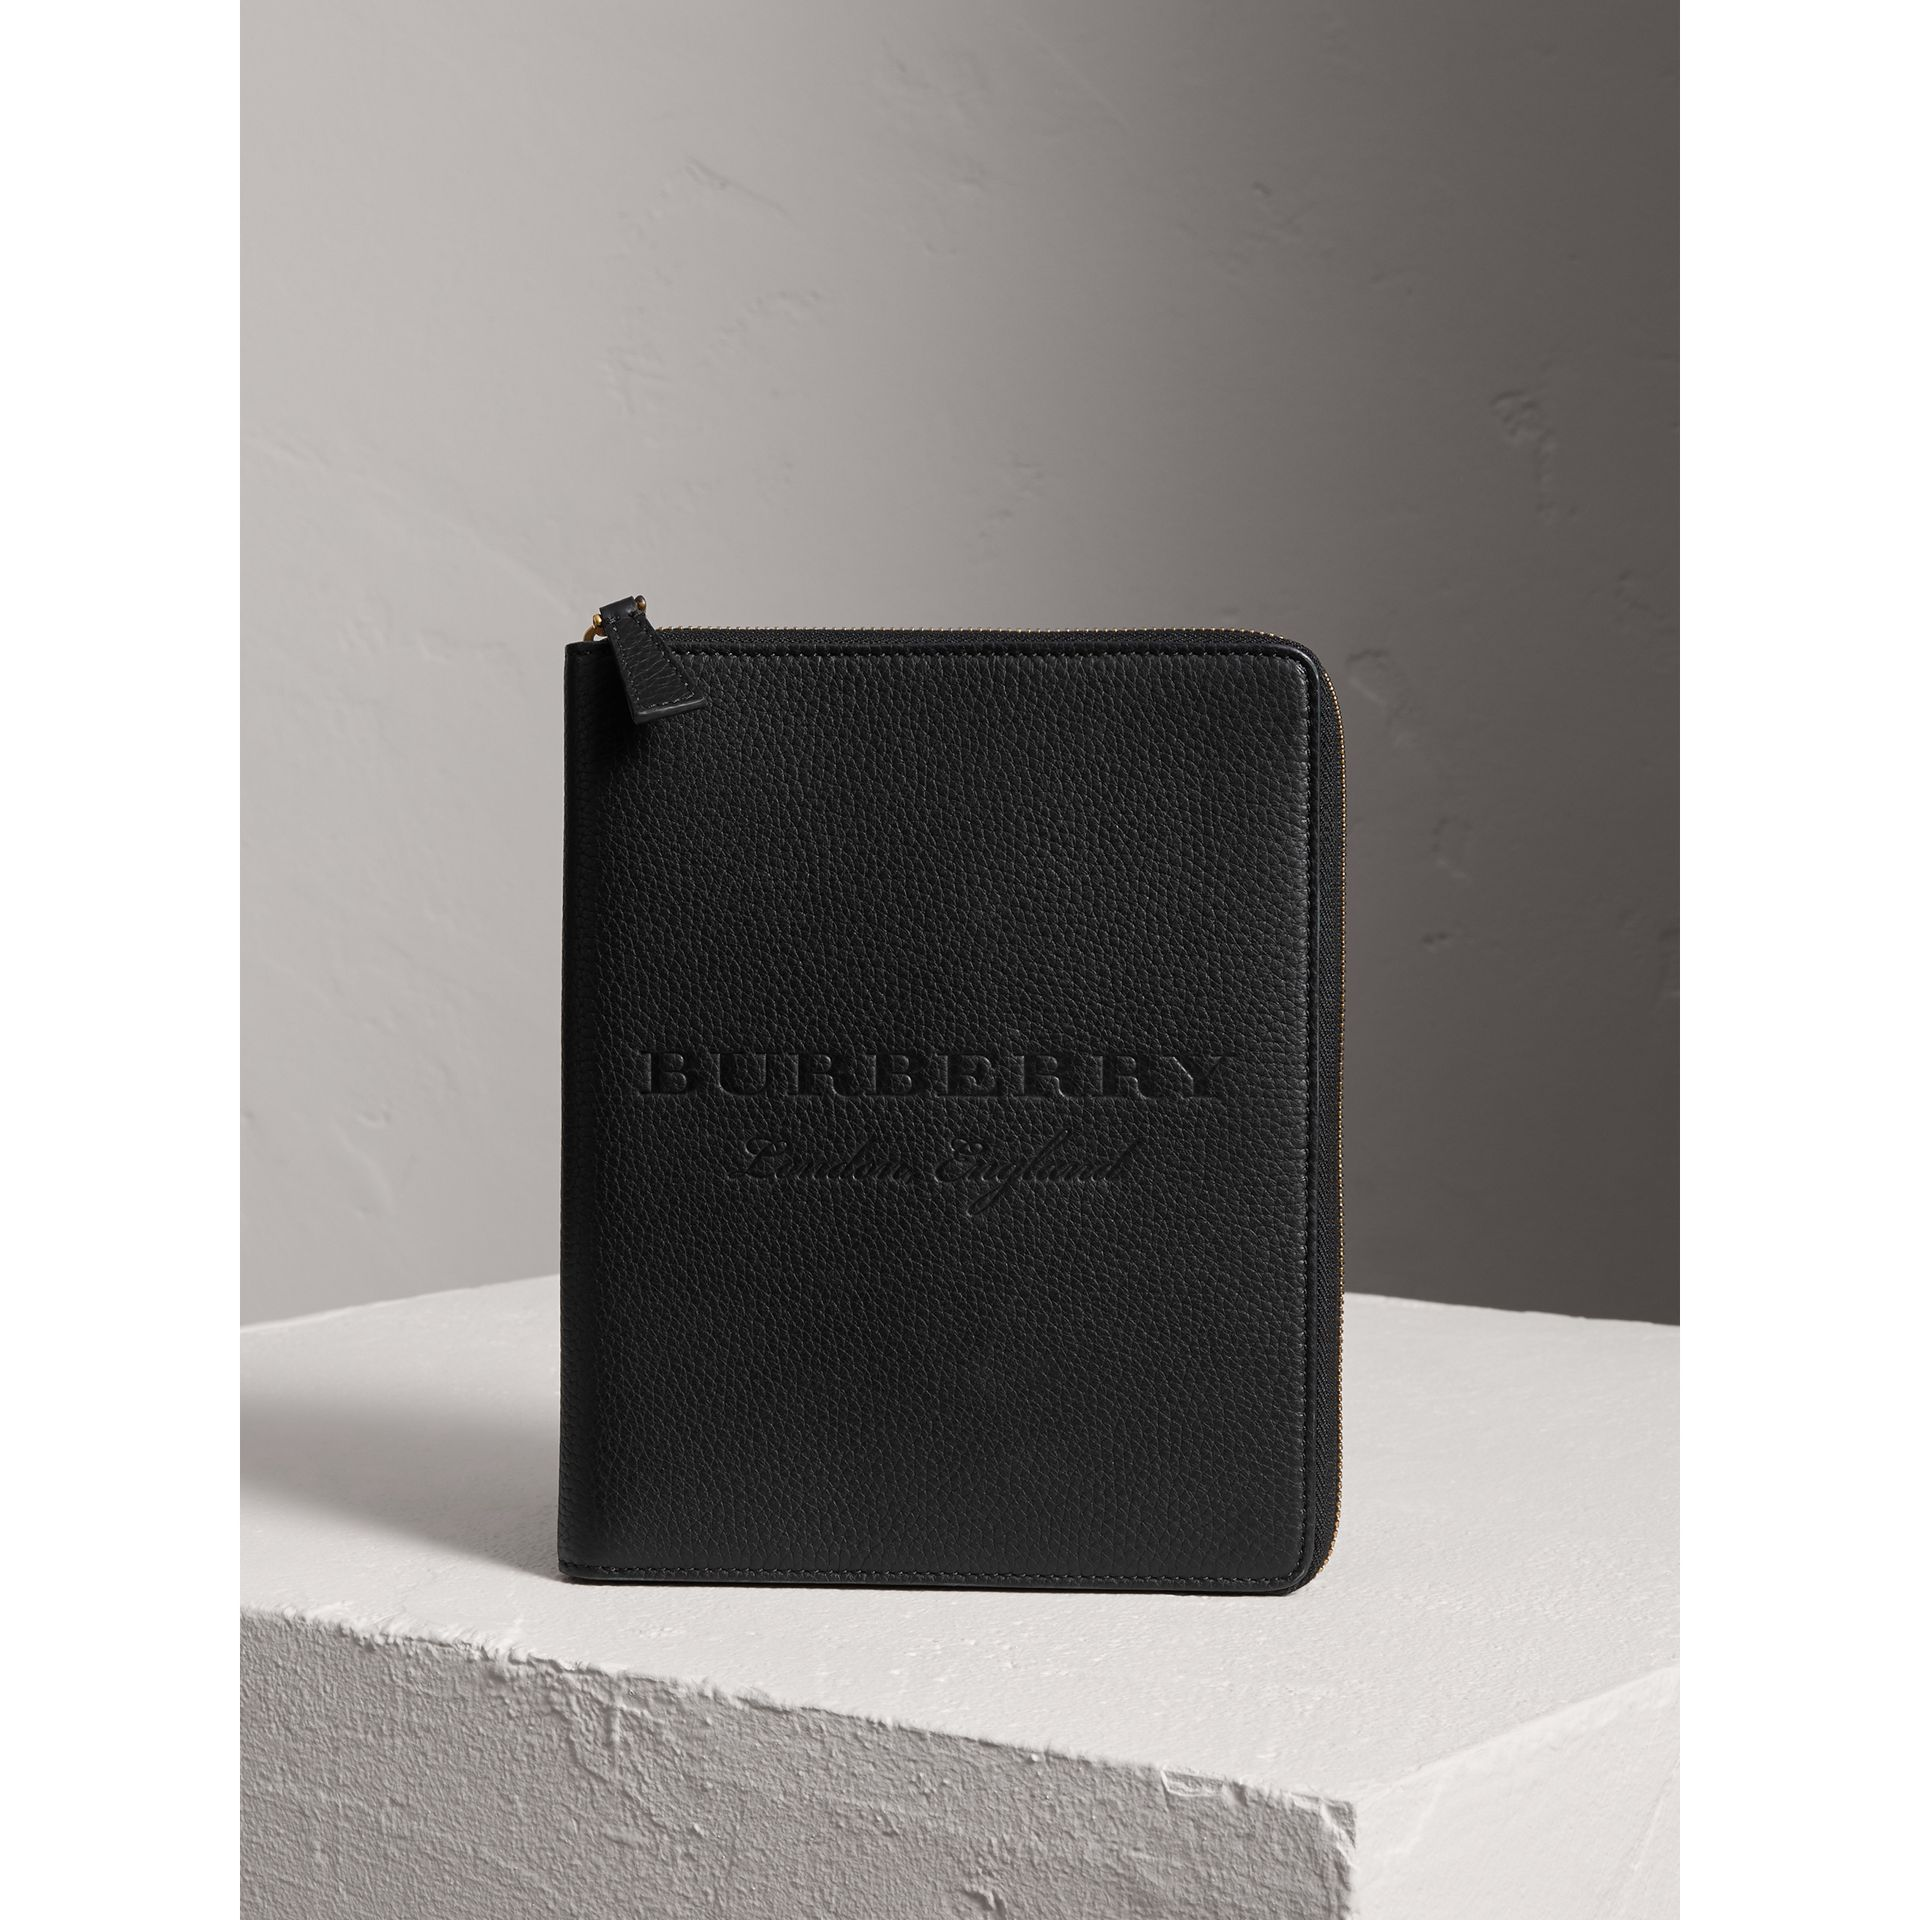 Embossed Leather Ziparound A5 Notebook Case in Black | Burberry United Kingdom - gallery image 4